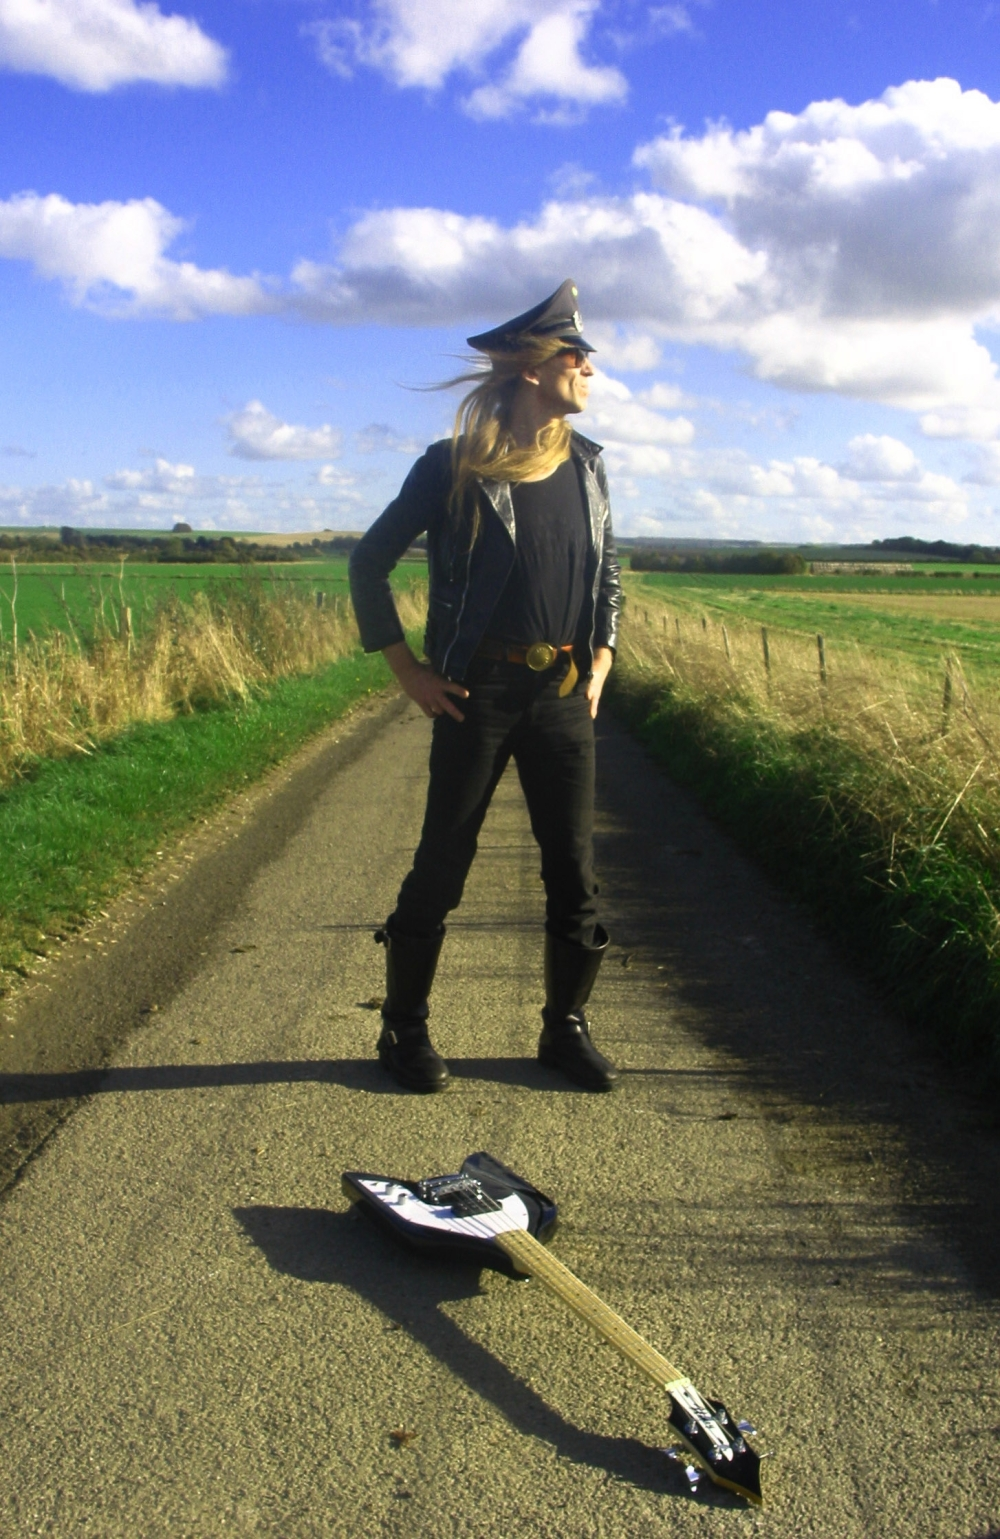 julian-cope-struggles-to-find-his-guitar-which-opted-for-the-hide-in-plain-sight-option